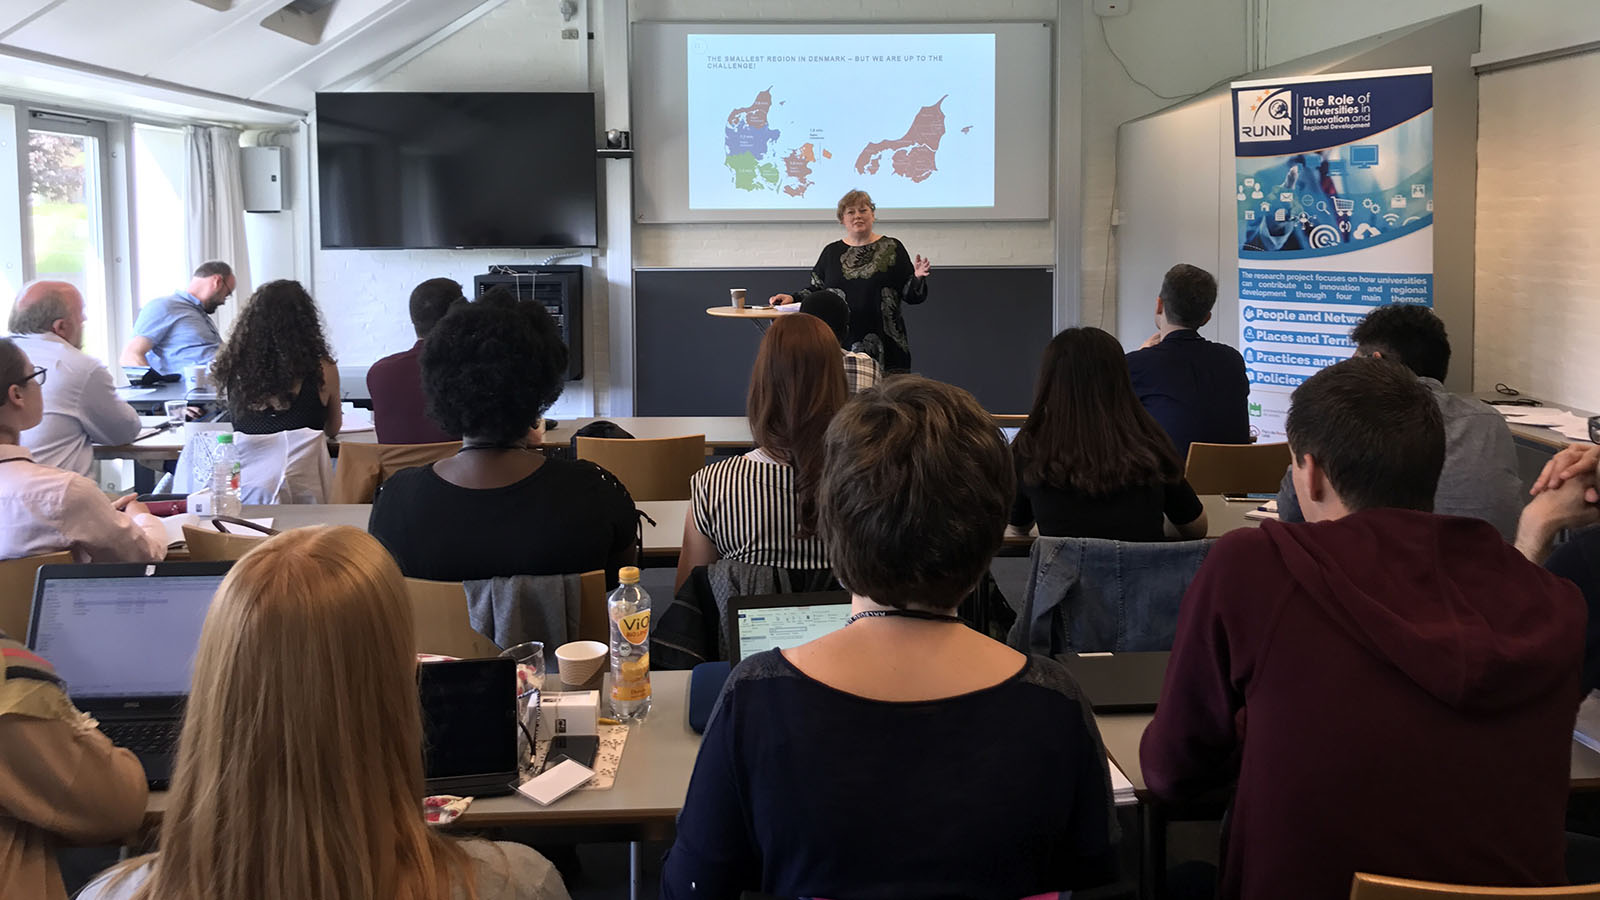 Charlotte Damborg, development consultant at North Denmark Region, on the linkages between them and Aalborg University.